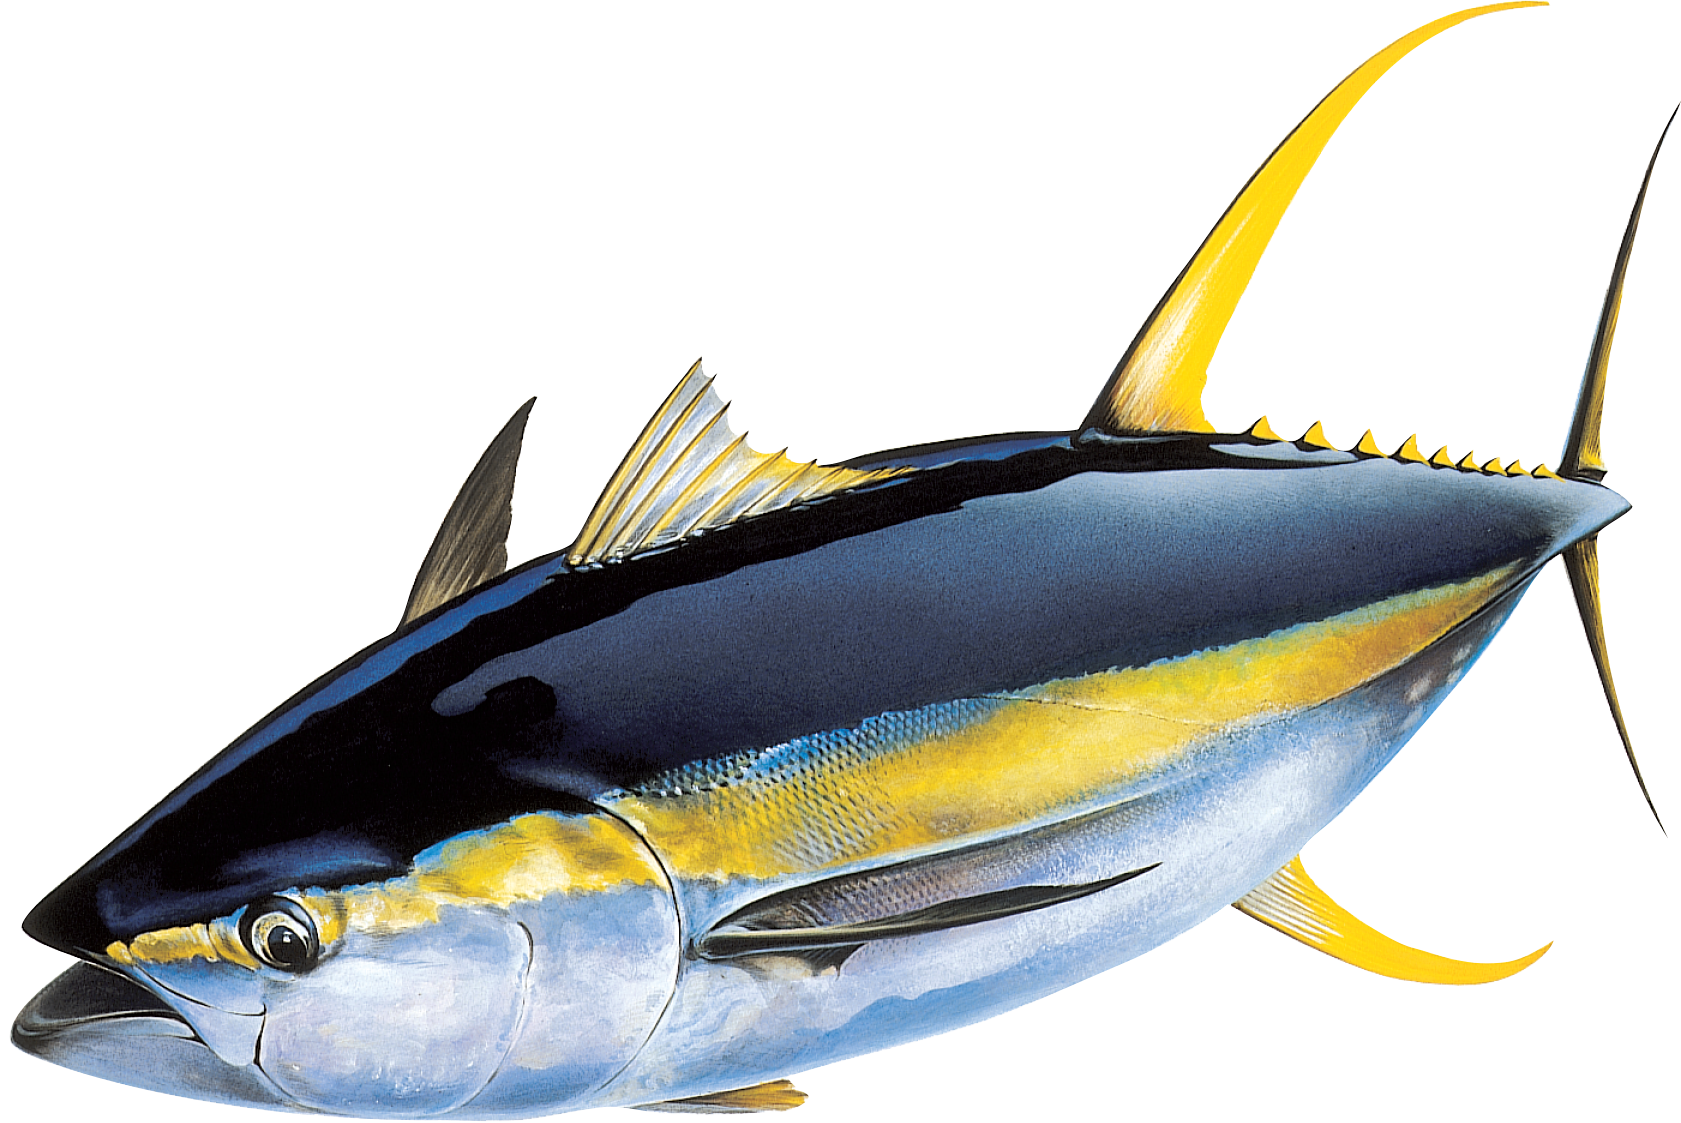 Png transparent images pluspng. Tuna clipart tuna fish